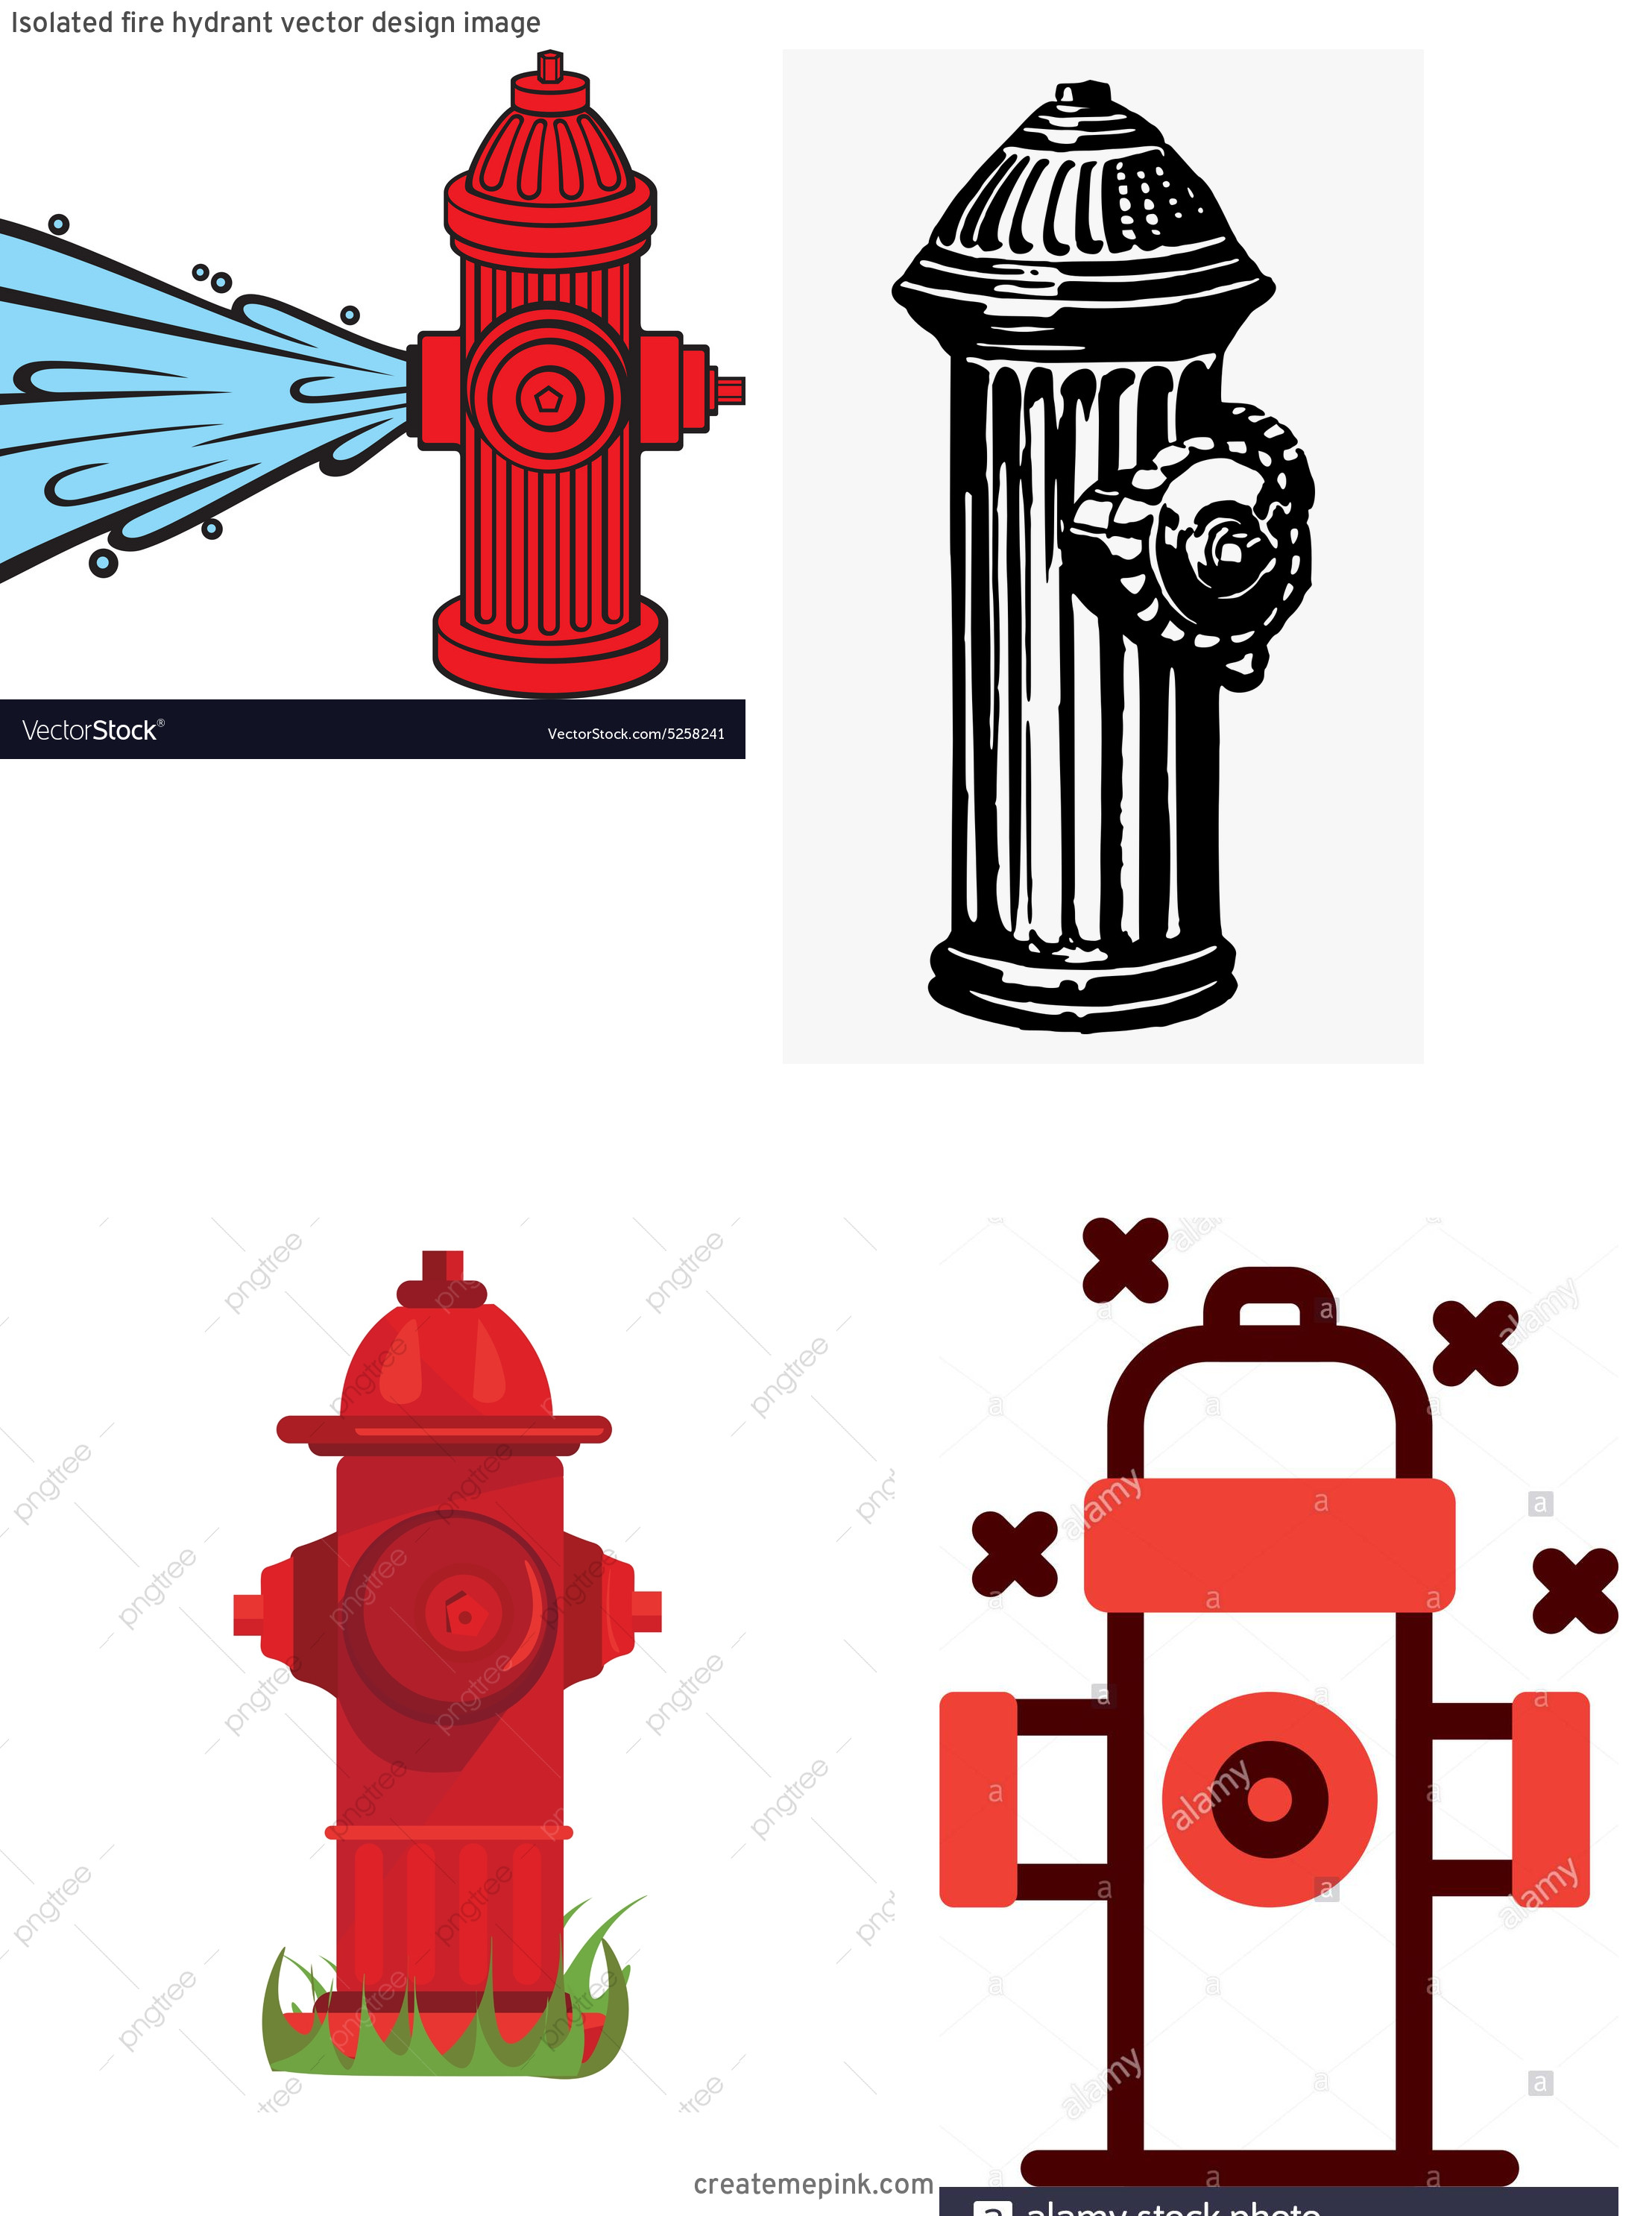 Fire Hydrant Vector Clip Art: Isolated Fire Hydrant Vector Design Image